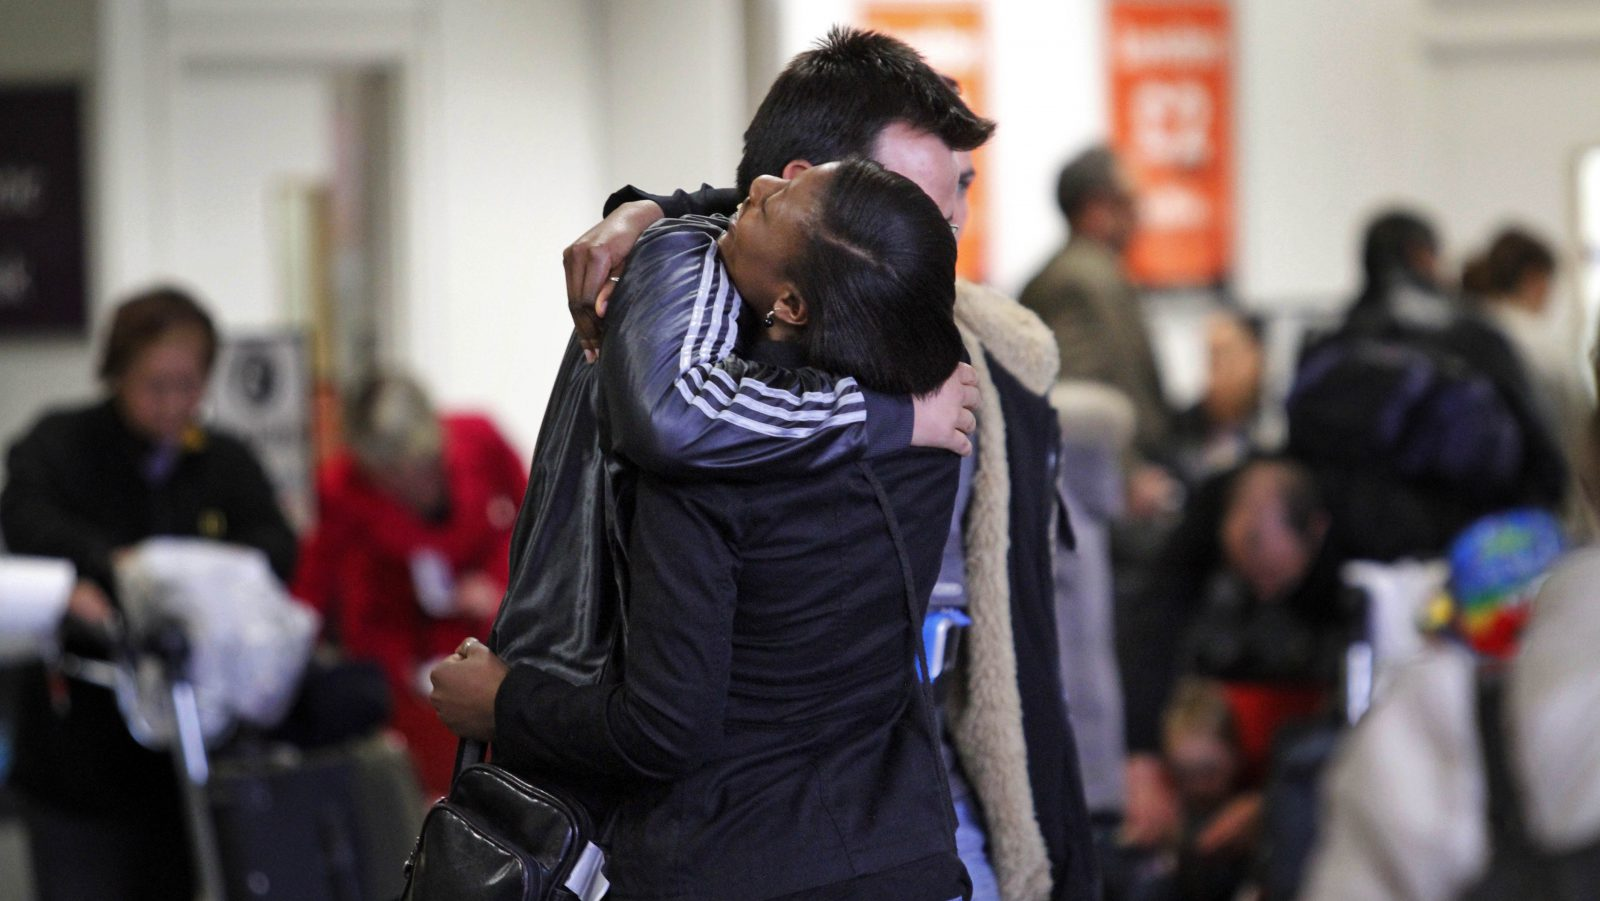 A couple embrace each other after they were re-united at the arrival hall of Gatwick airport, near London, England, Wednesday, April 21, 2010. Britain's Heathrow Airport _ Europe's busiest hub _ has seen the first flight land in London since airspace across the continent was closed by the giant plume of ash spewed during a volcanic eruption in Iceland.(AP Photo/Lefteris Pitarakis)